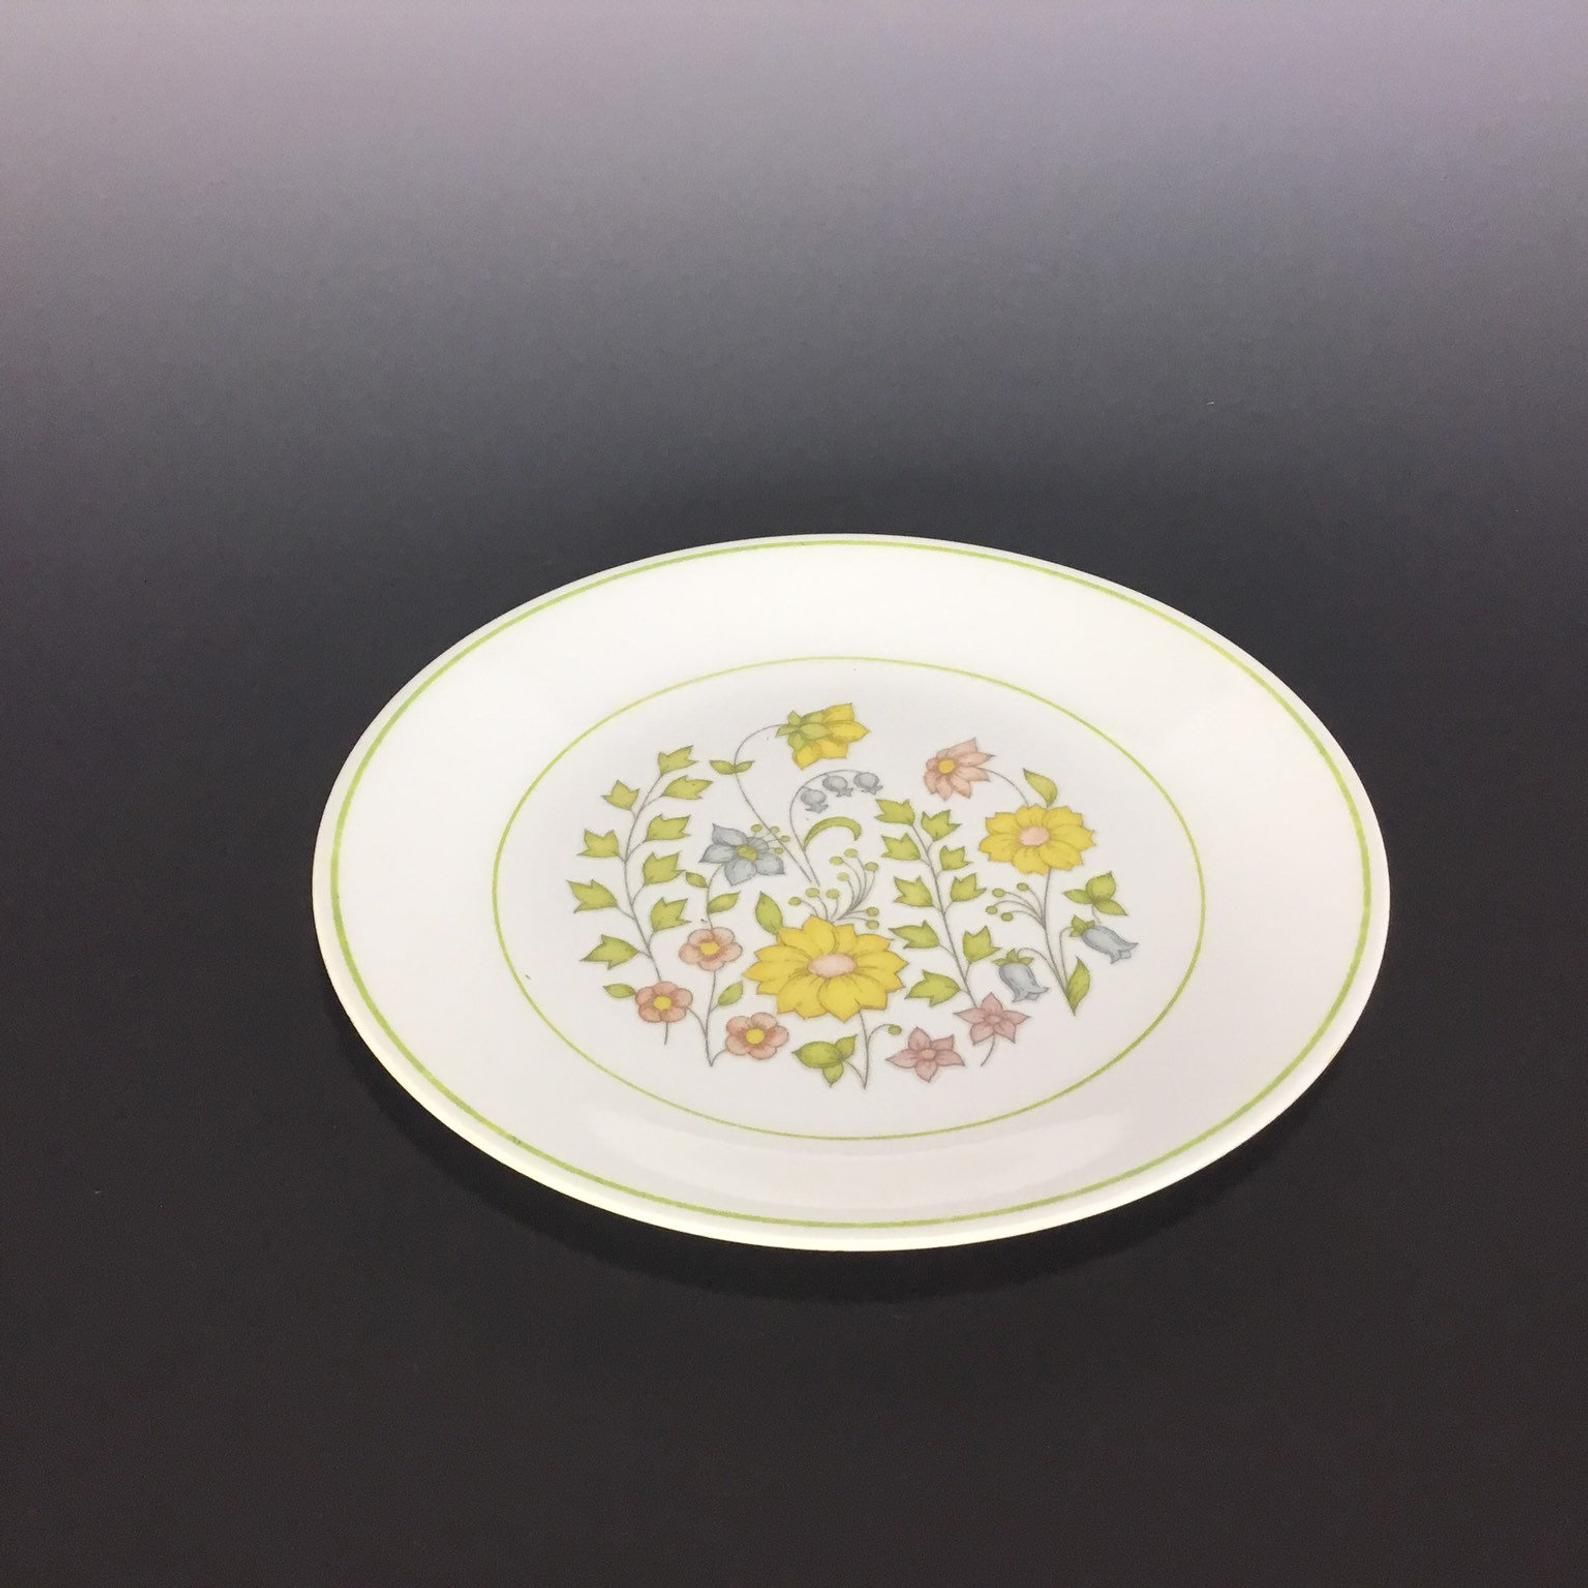 10 1 4 Dinner Plate Corelle Meadow Sold Individually Or In Sets In 2020 Dinner Plates Plates 10 Things